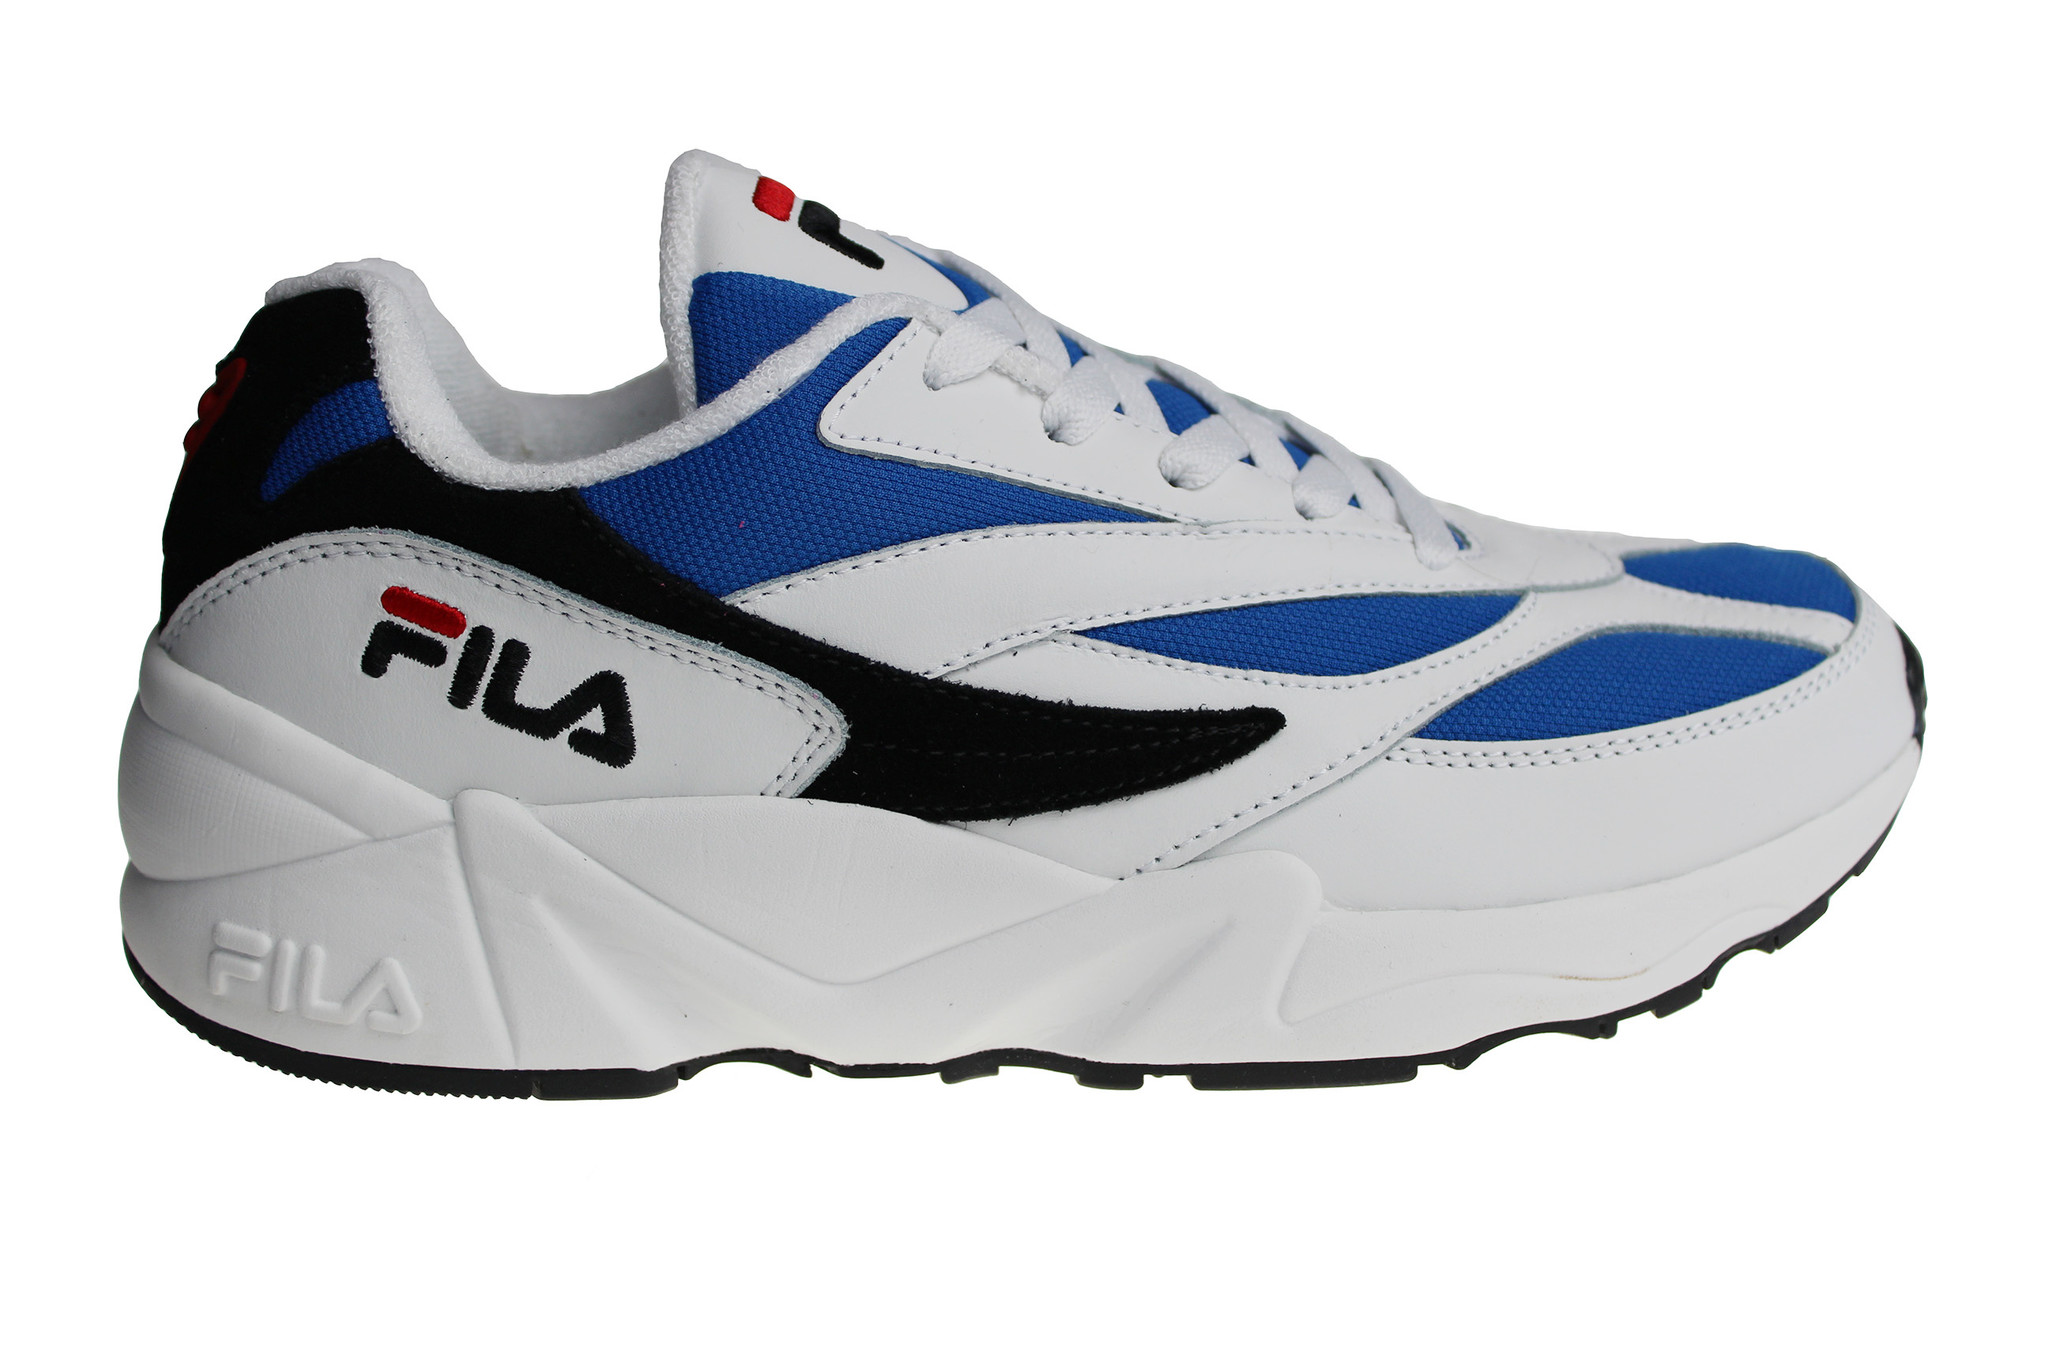 Fila V94M Low 1010255.01U White/Blue/Black Men